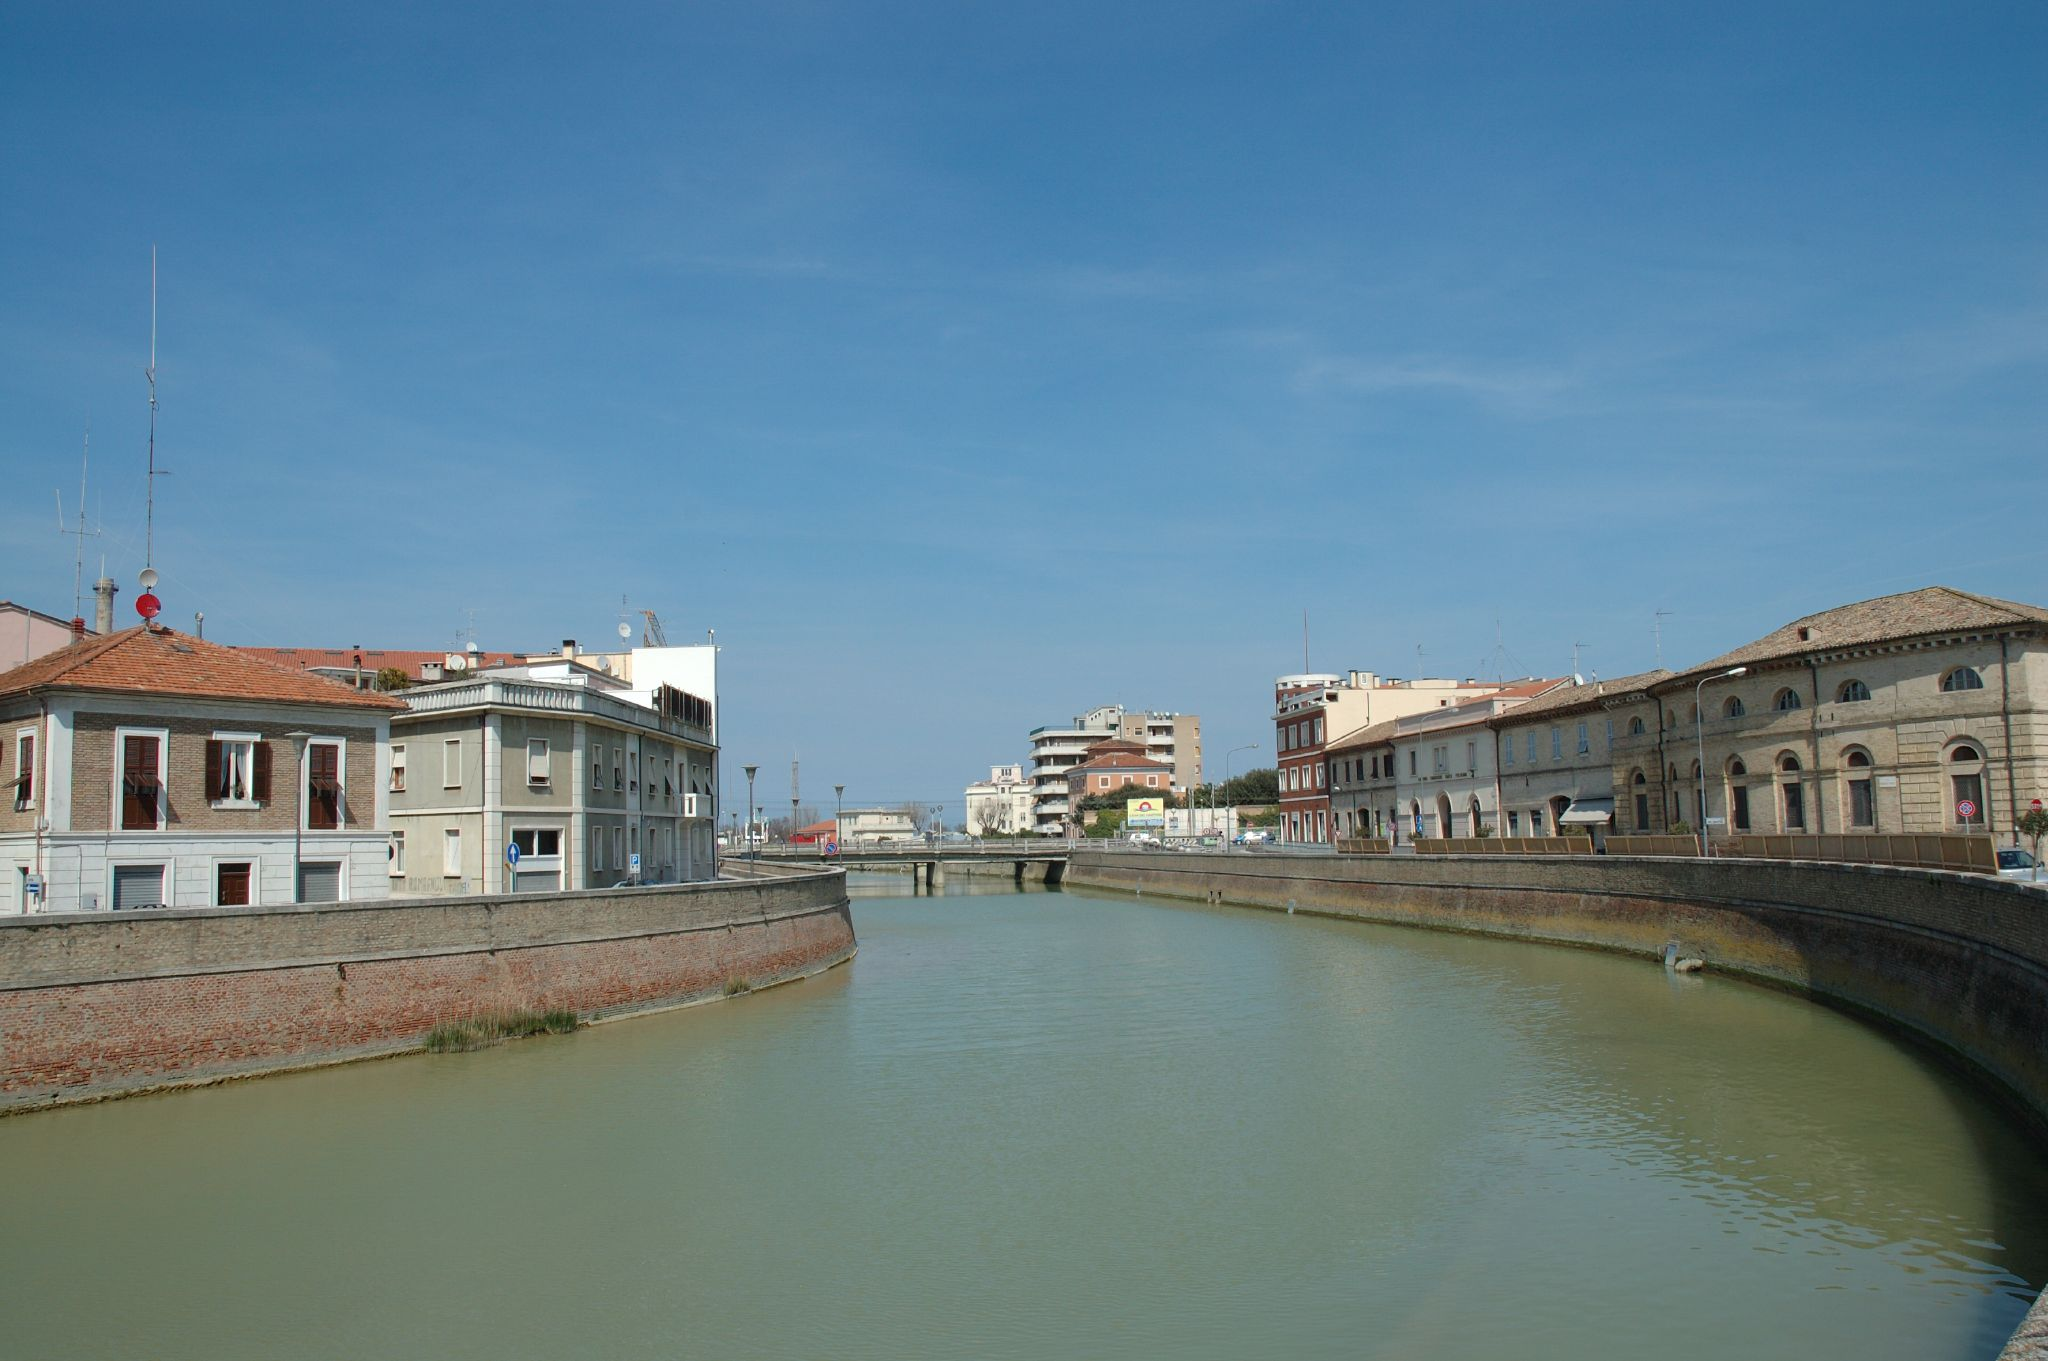 Senigallia Italy  city pictures gallery : Description Senigallia misa01